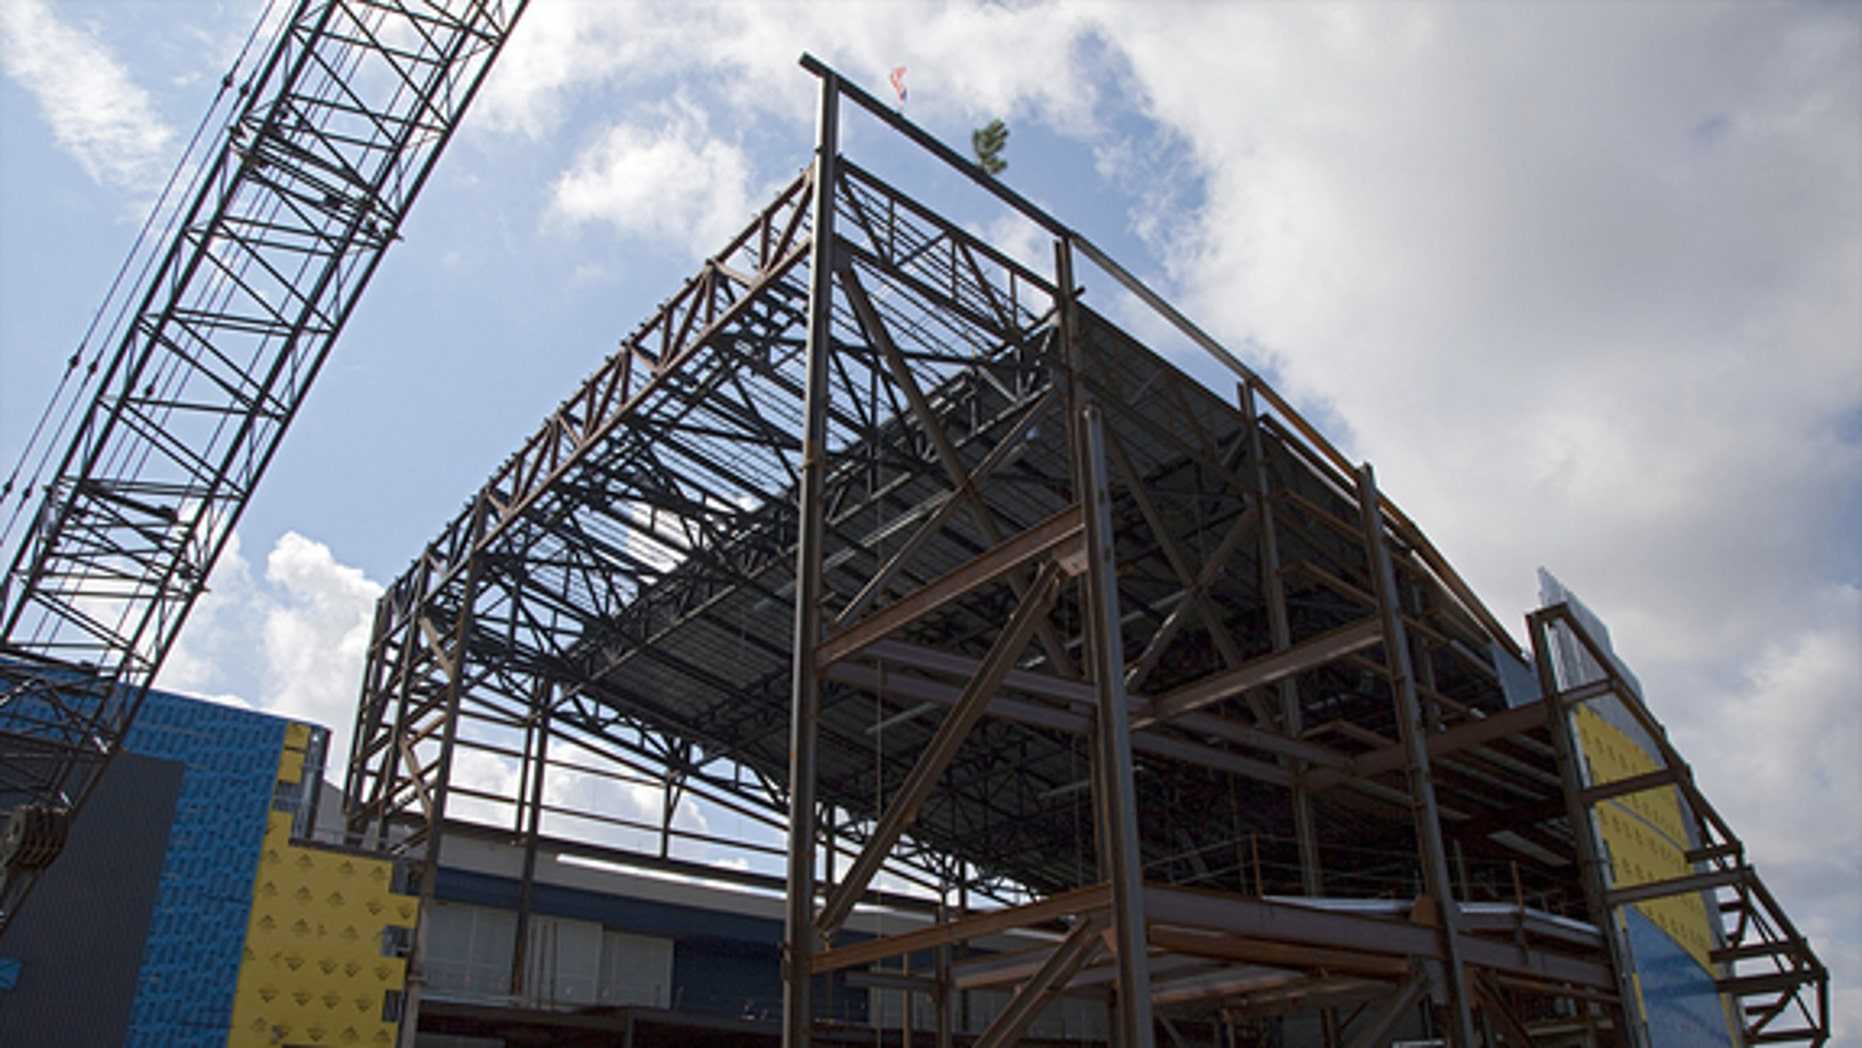 """A steel beam, temporarily """"topped out"""" with a tree, was fitted on Sept. 5, 2012, to the highest point of the exhibit facility for space shuttle Atlantis at the Kennedy Space Center Visitor Complex in Florida."""